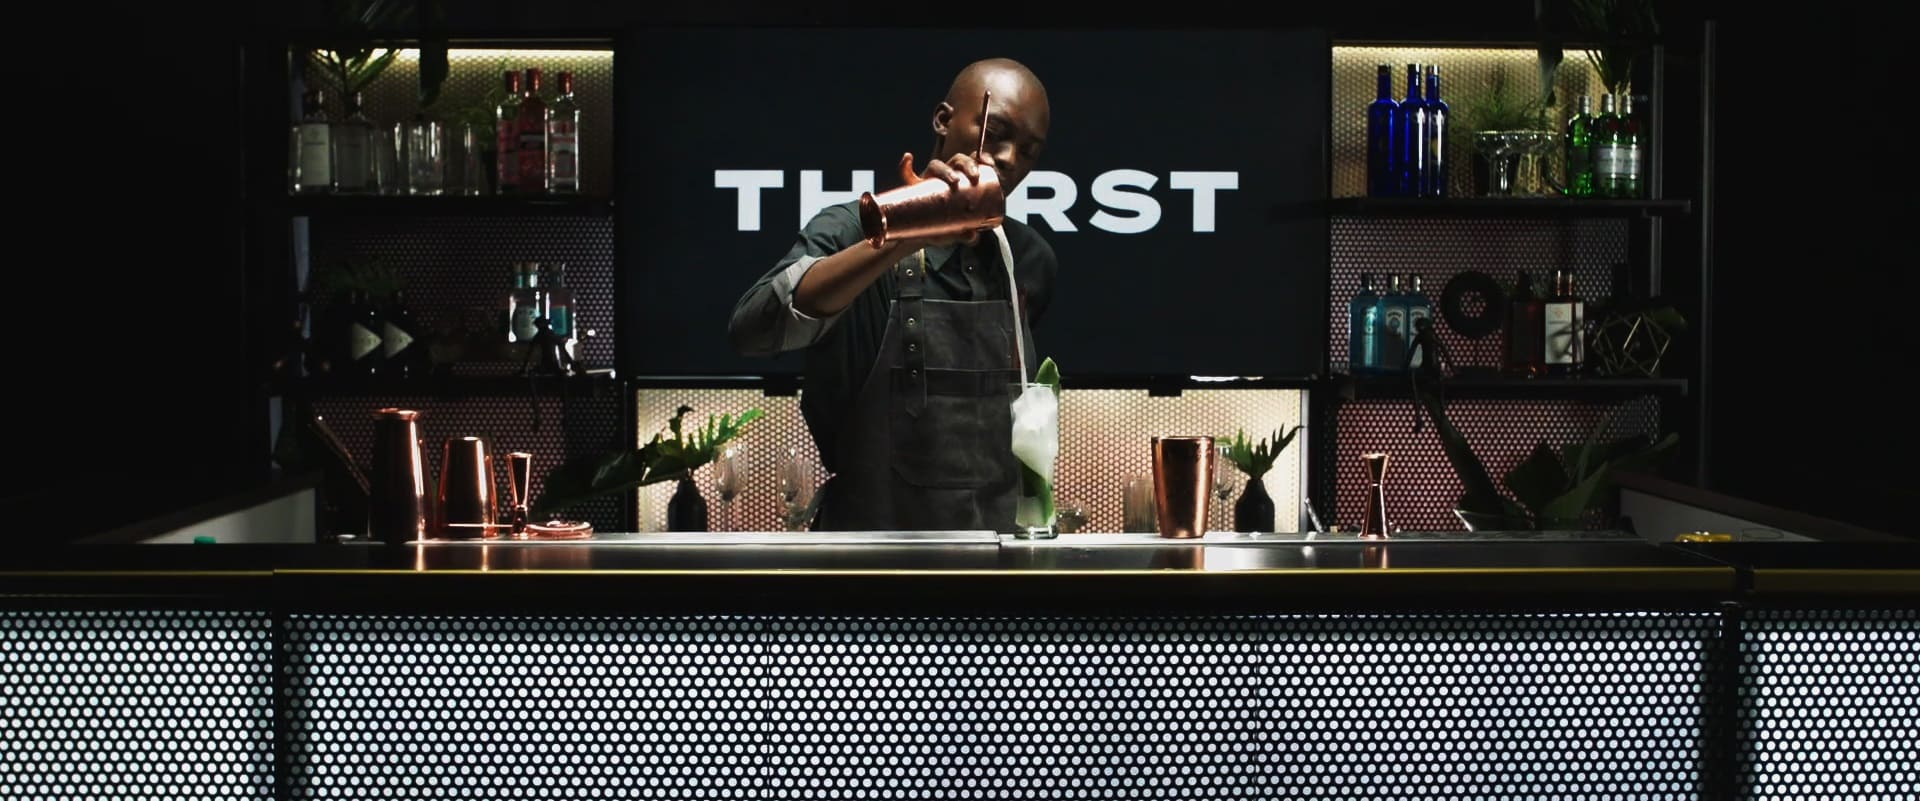 BLOG for Thirst Bar Services